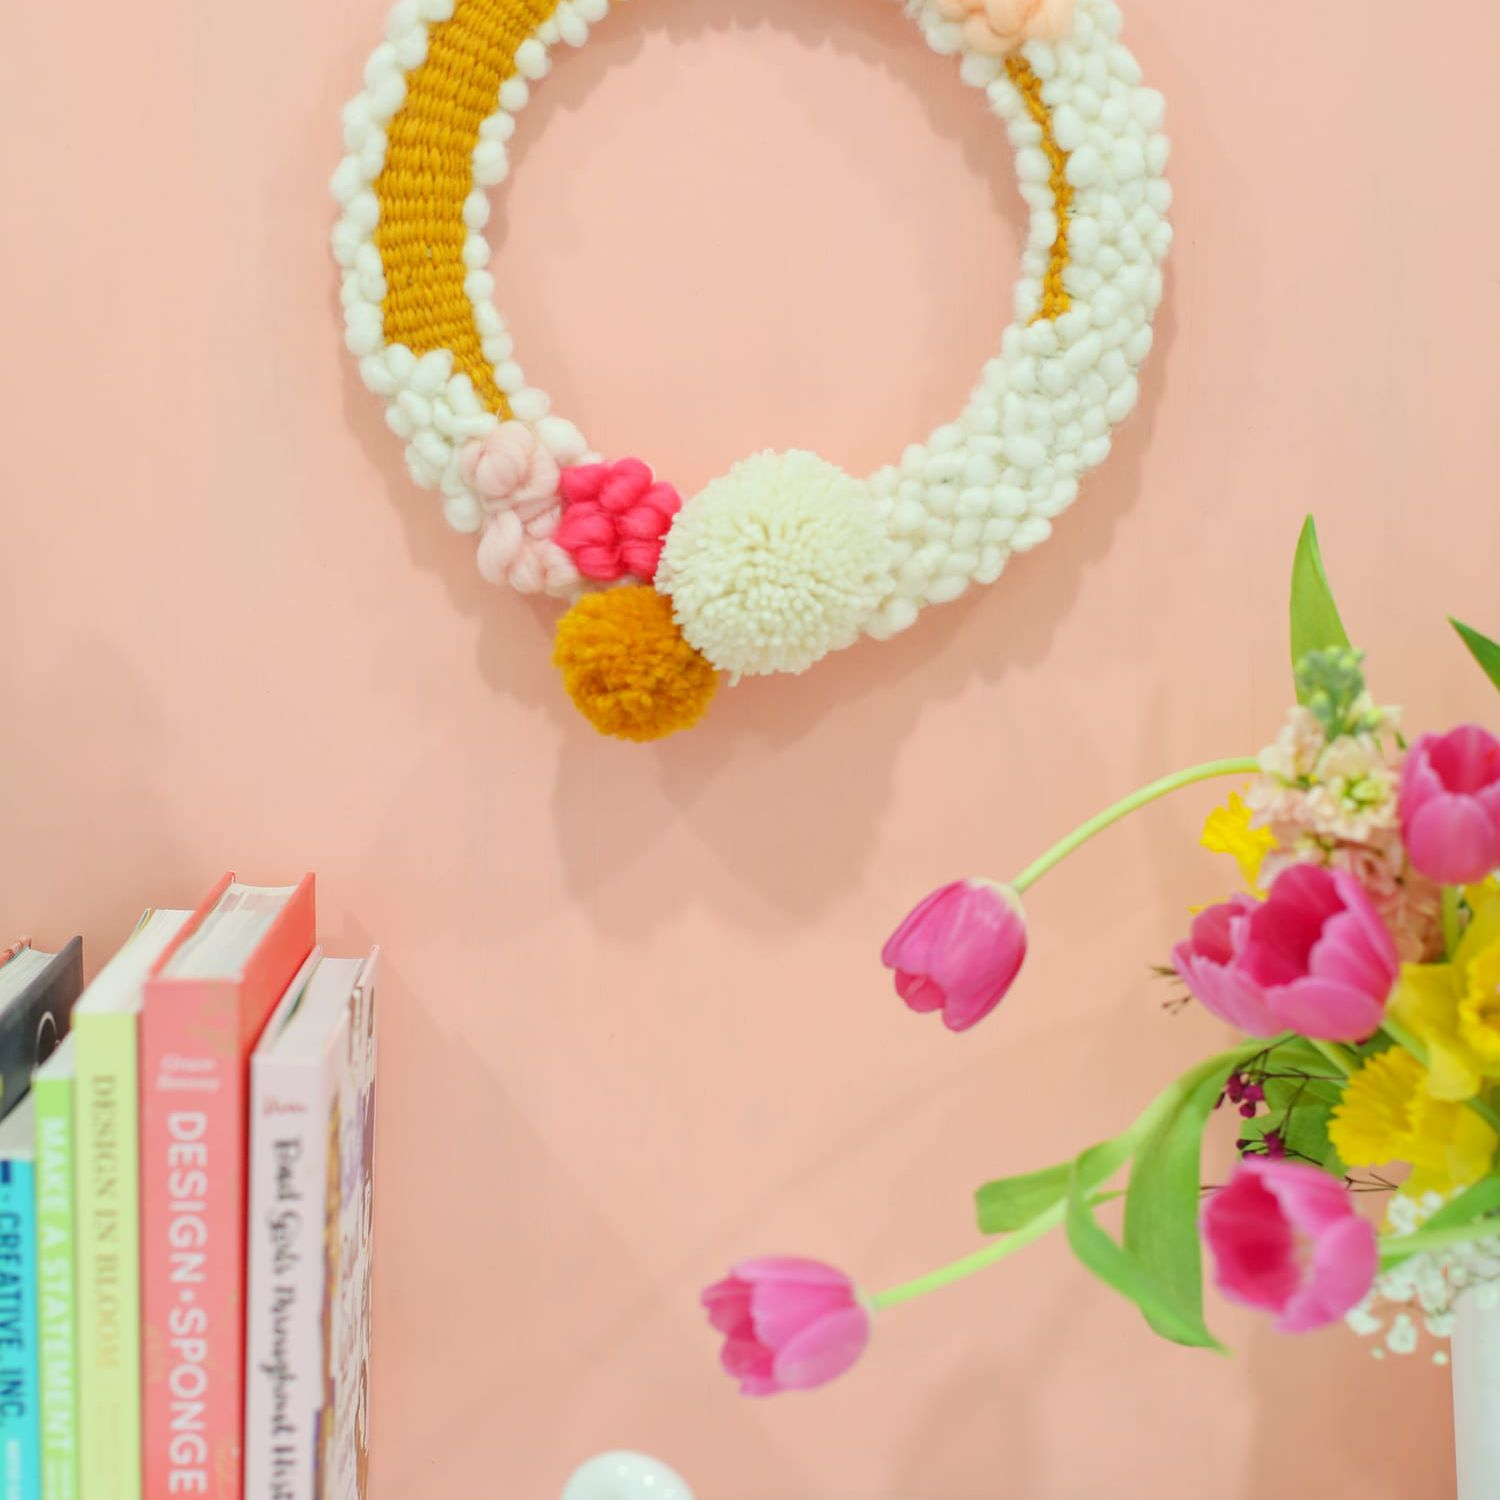 wreath made with yarn and pompoms